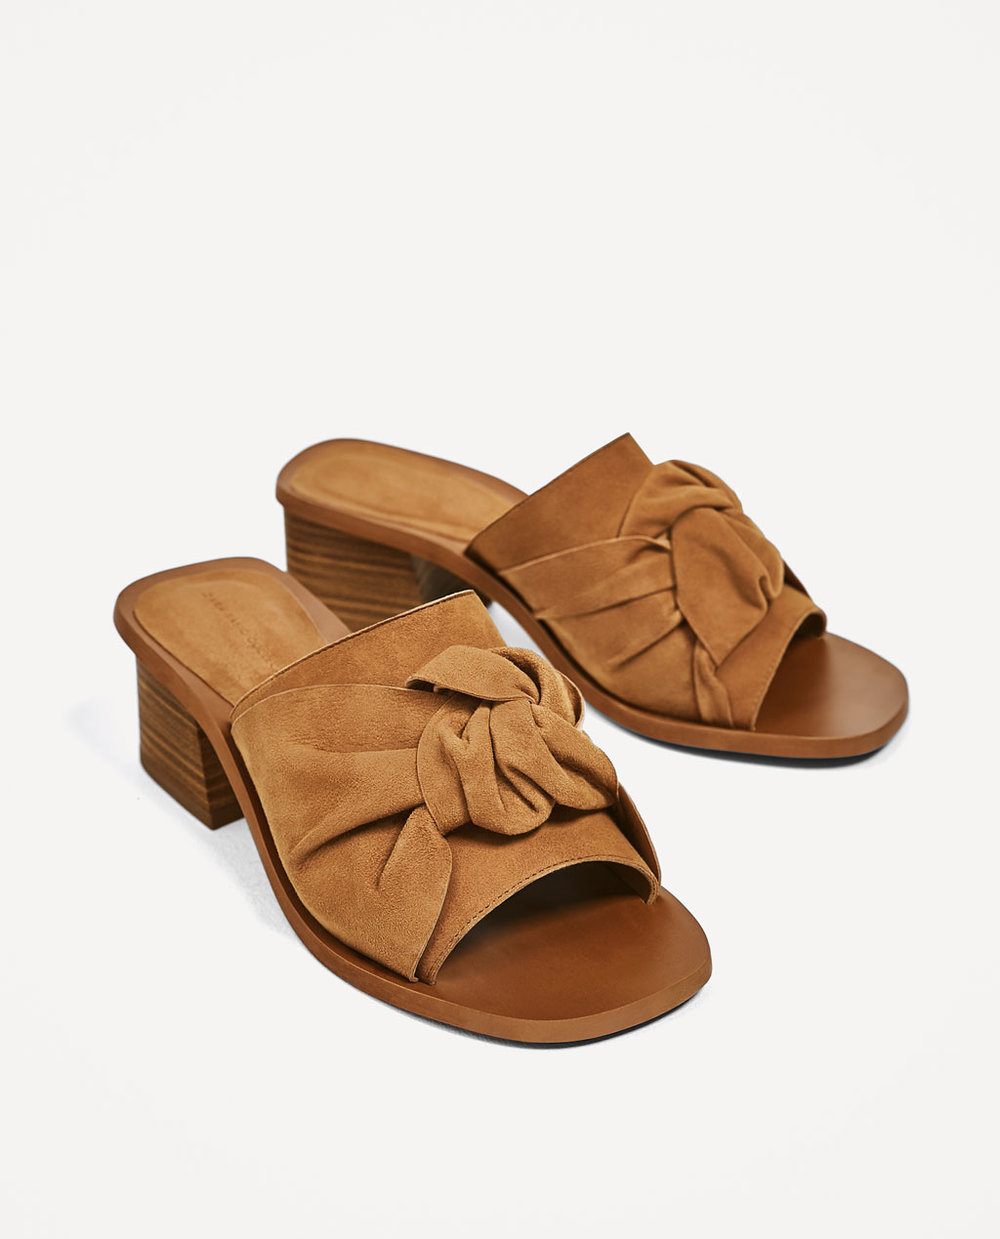 Knotted Leather Mules / Zara / $69 The tan color with the knot... this is on my list!